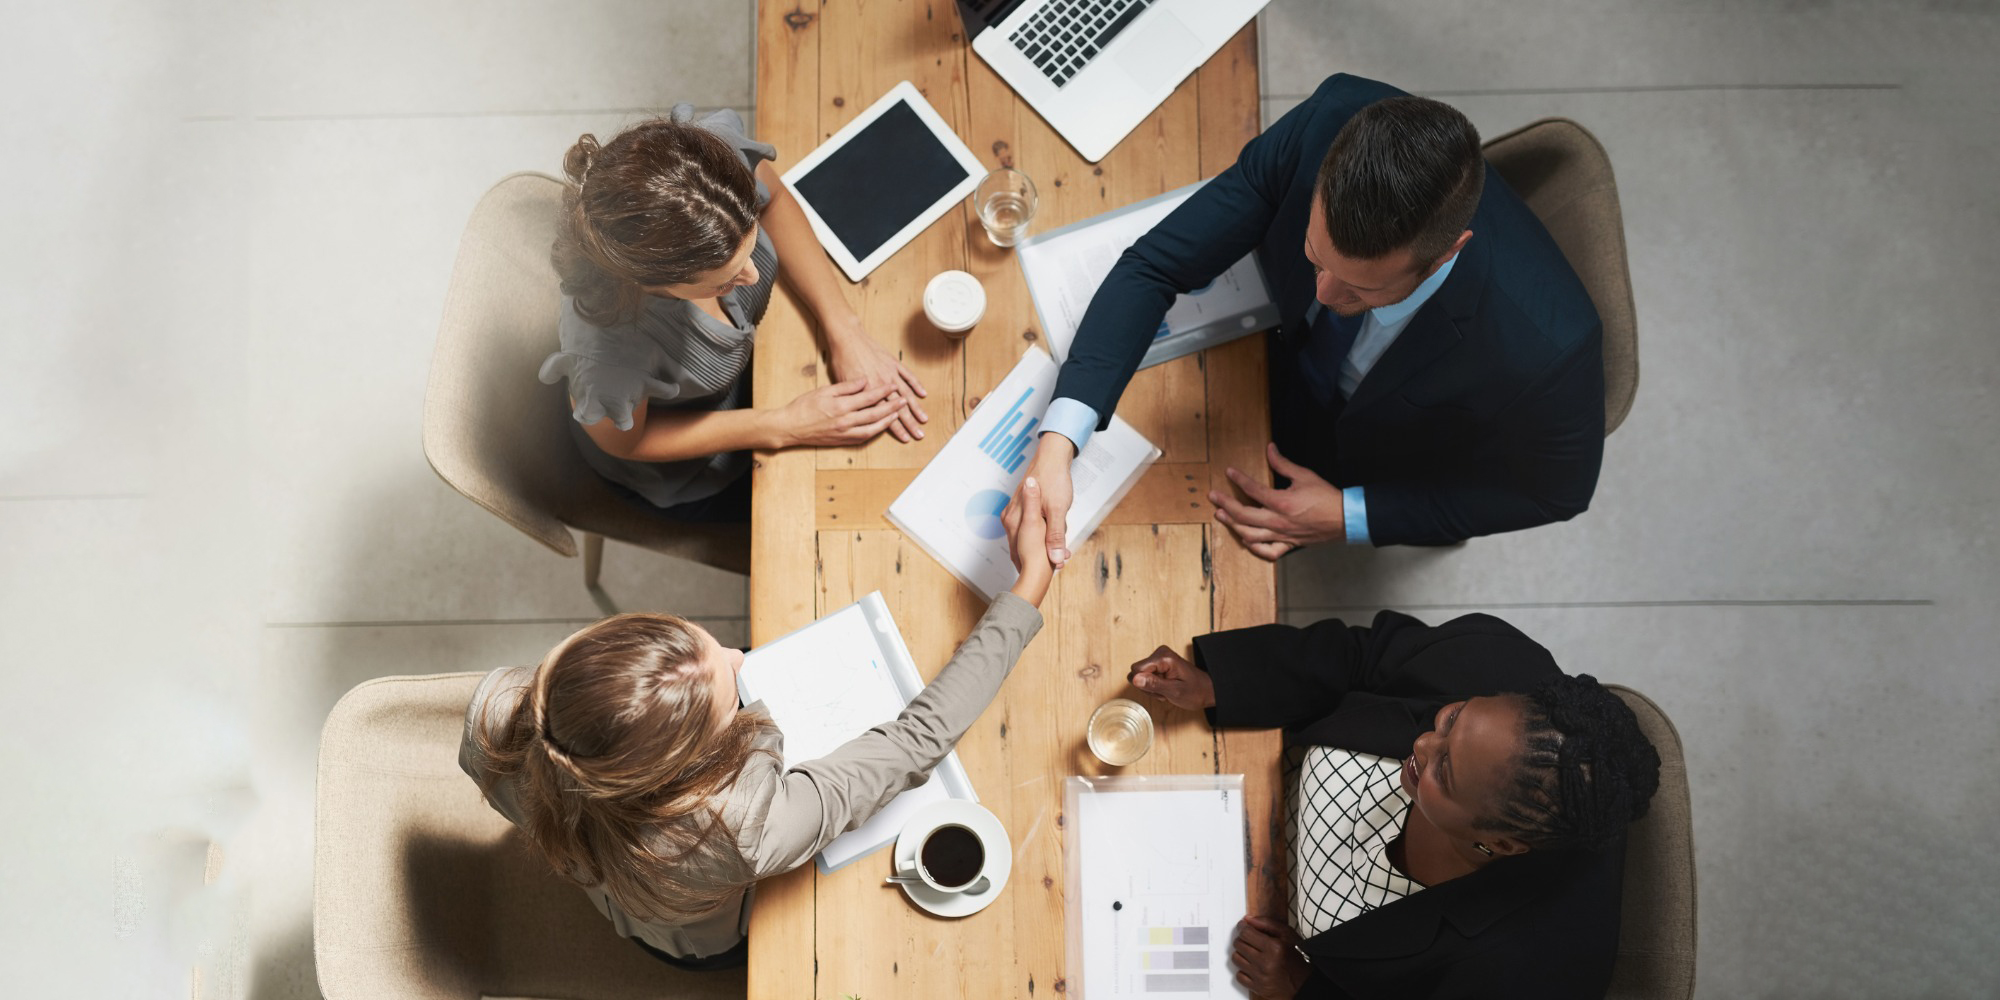 Mergers and acquisitions: How to treat employees right